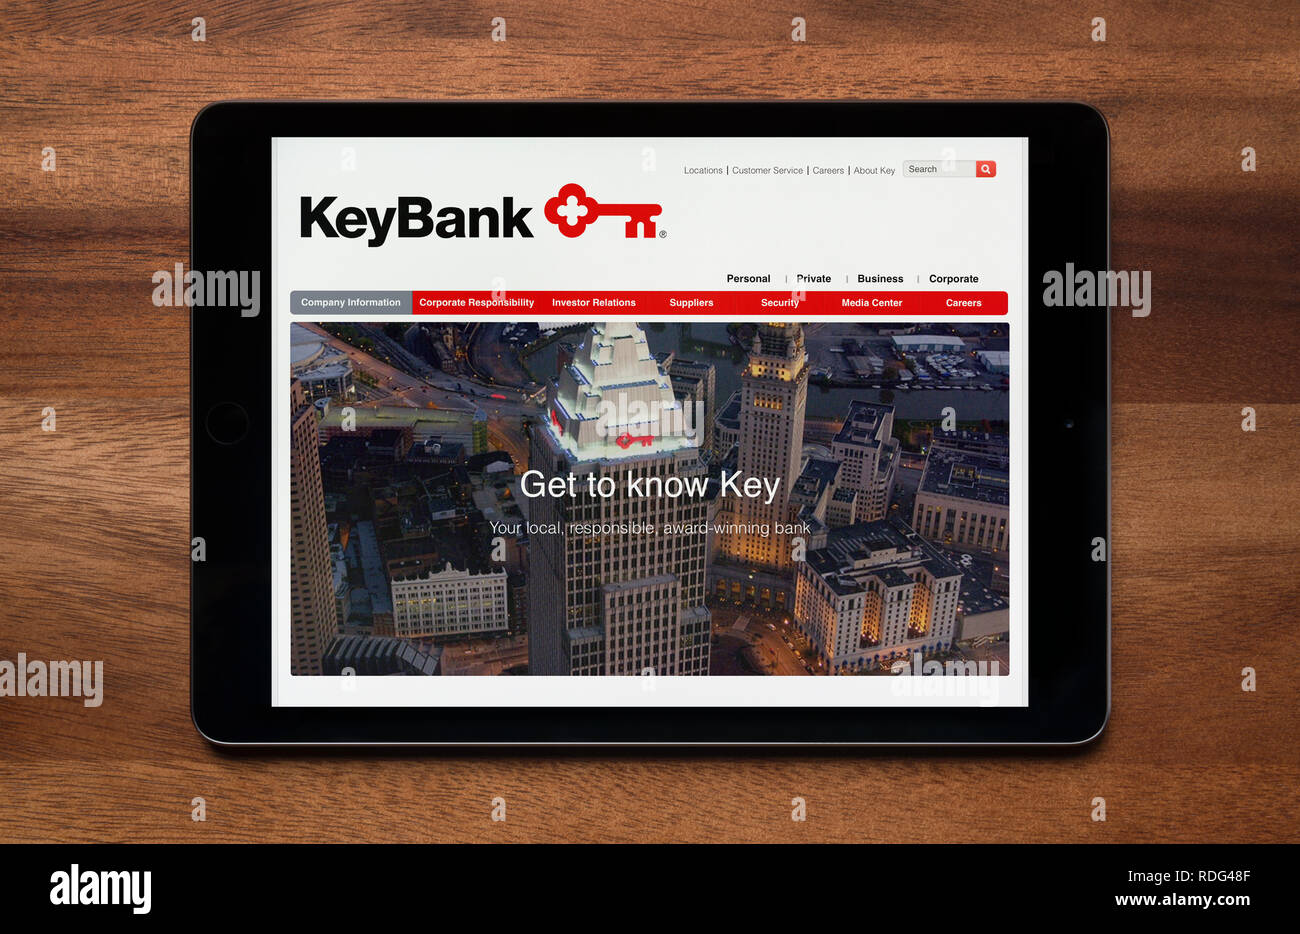 Keybank Stock Photos & Keybank Stock Images - Alamy